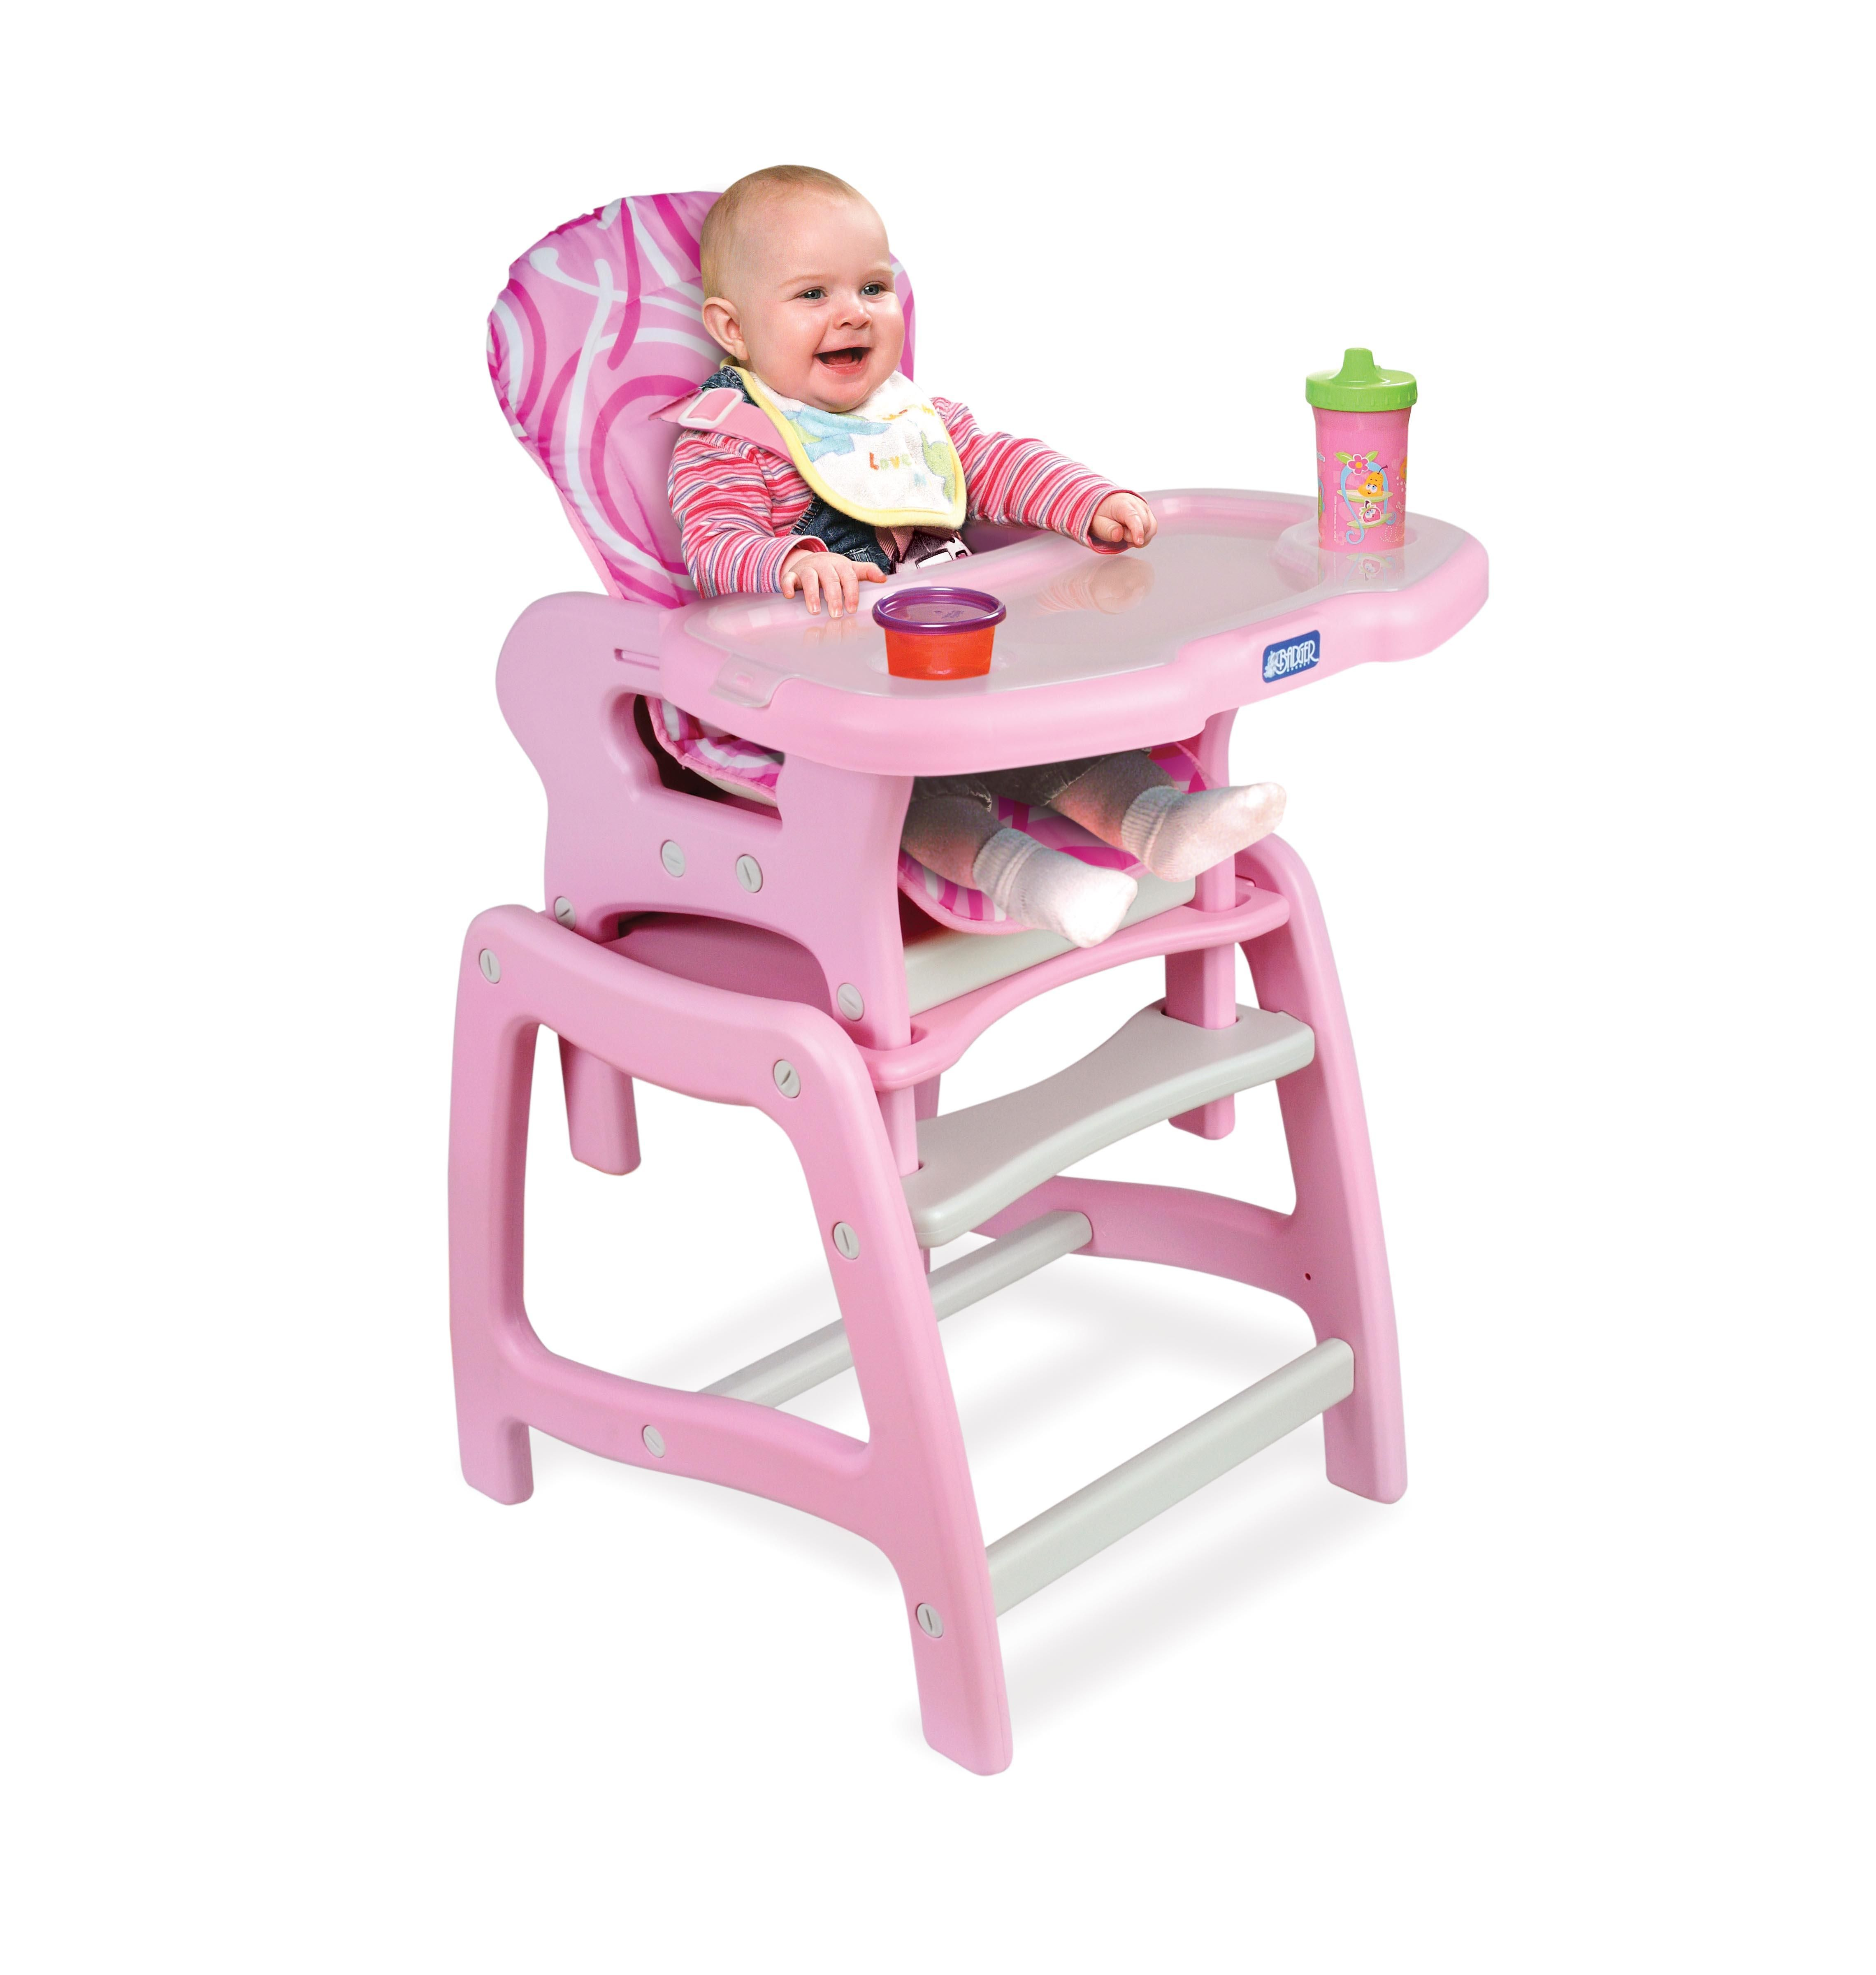 16 cute baby high chairs for boys and girls sweet pink for Cute toddler chairs